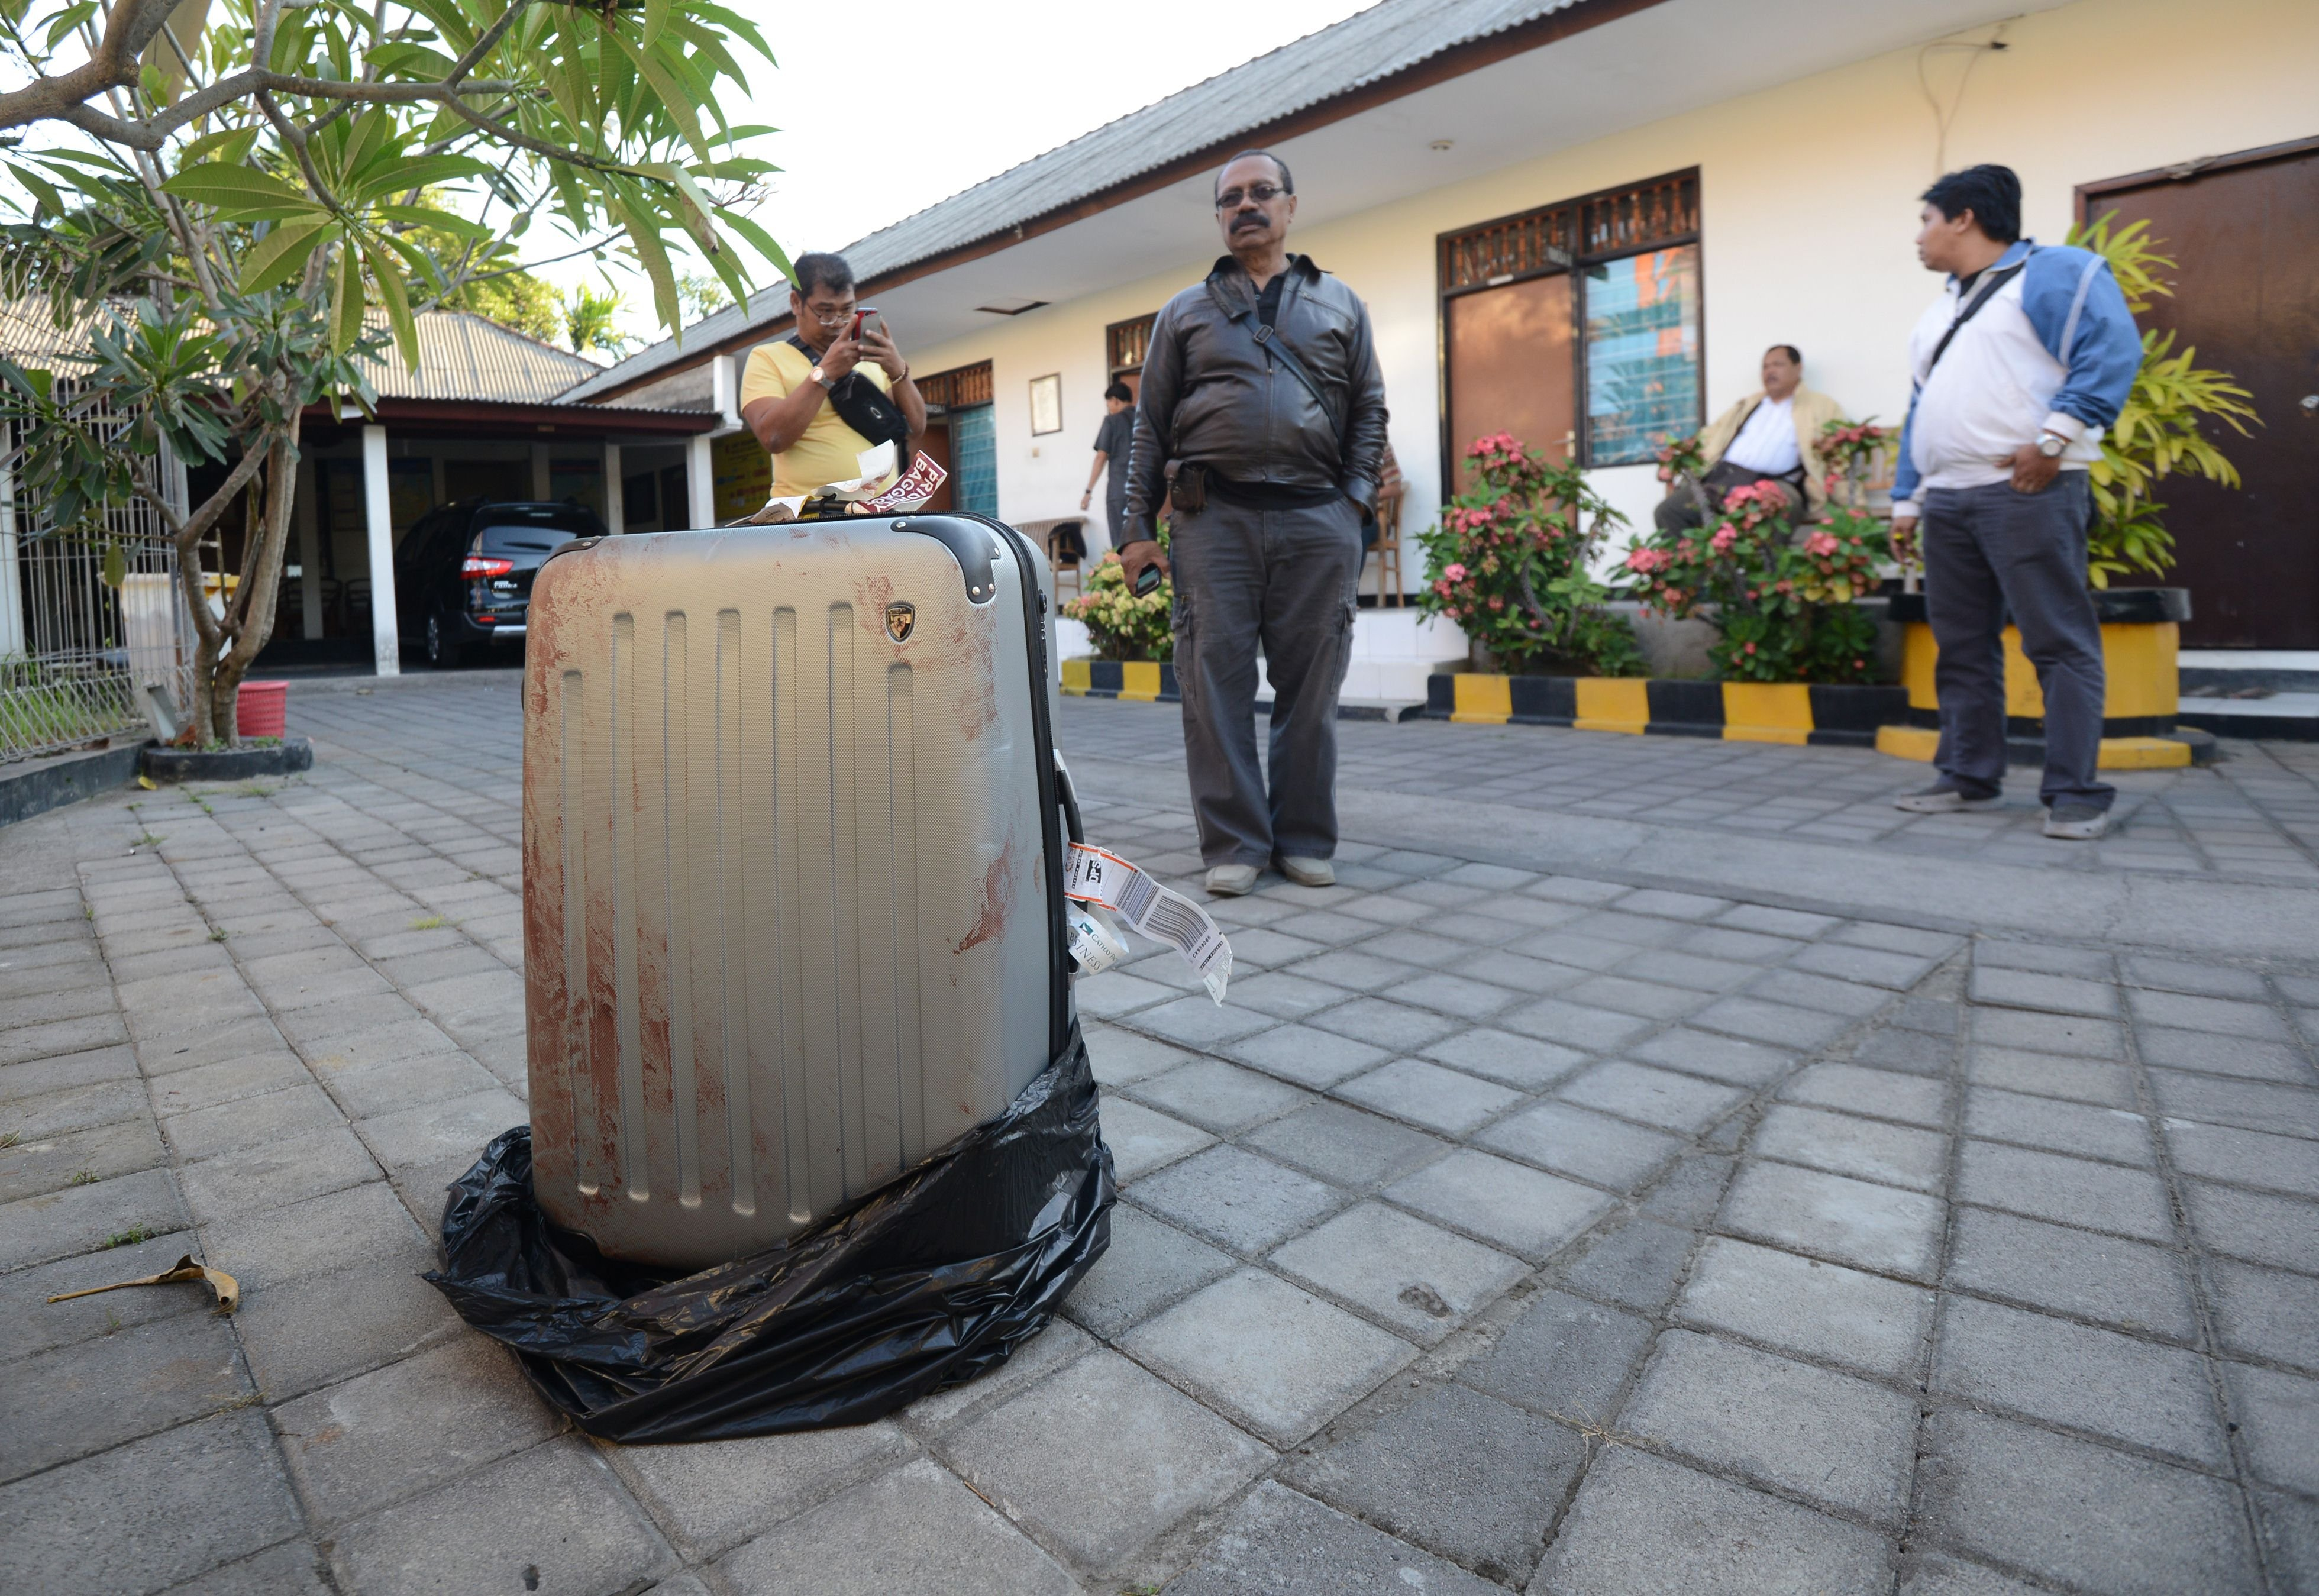 The suitcase where the body of a woman was found inside, displayed at a police station in Nusa Dua on the Indonesian resort island of Bali, Aug. 12, 2014.